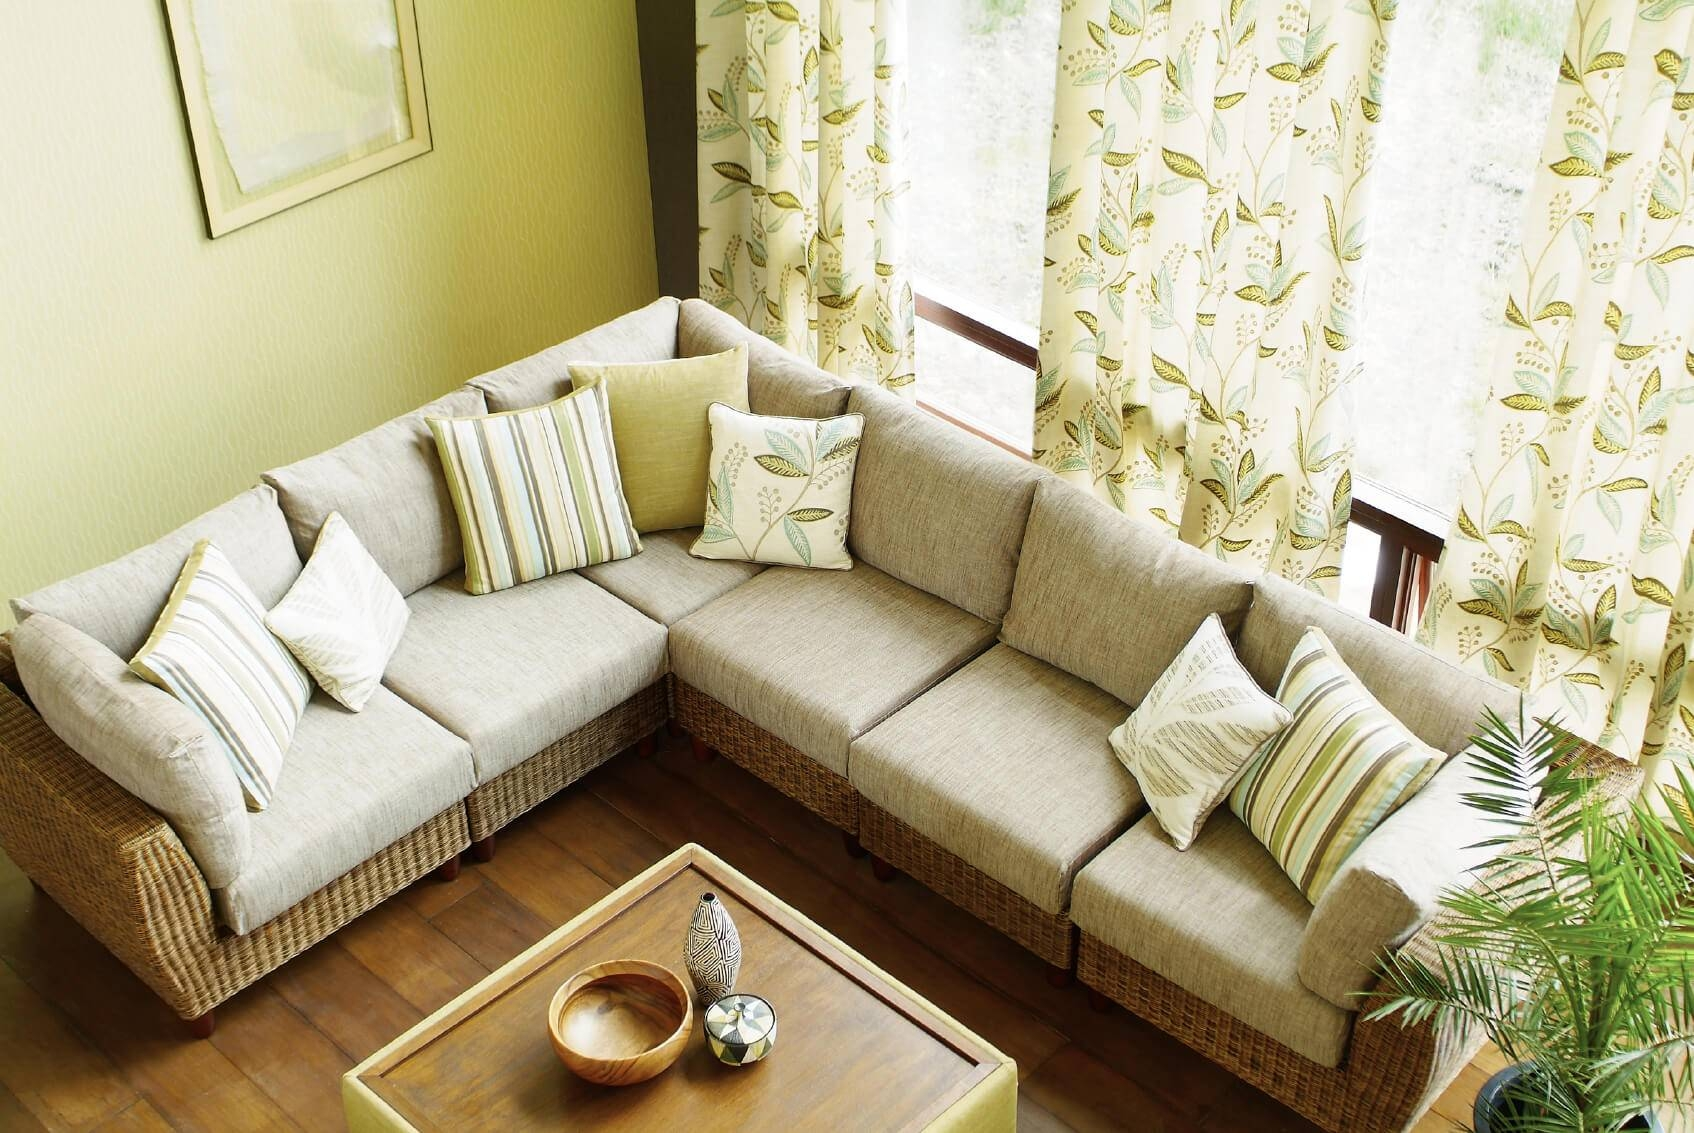 Living Room. Amazing Designs Of Sofas For Living Room: Designs-Of in Window Sofas (Image 11 of 15)